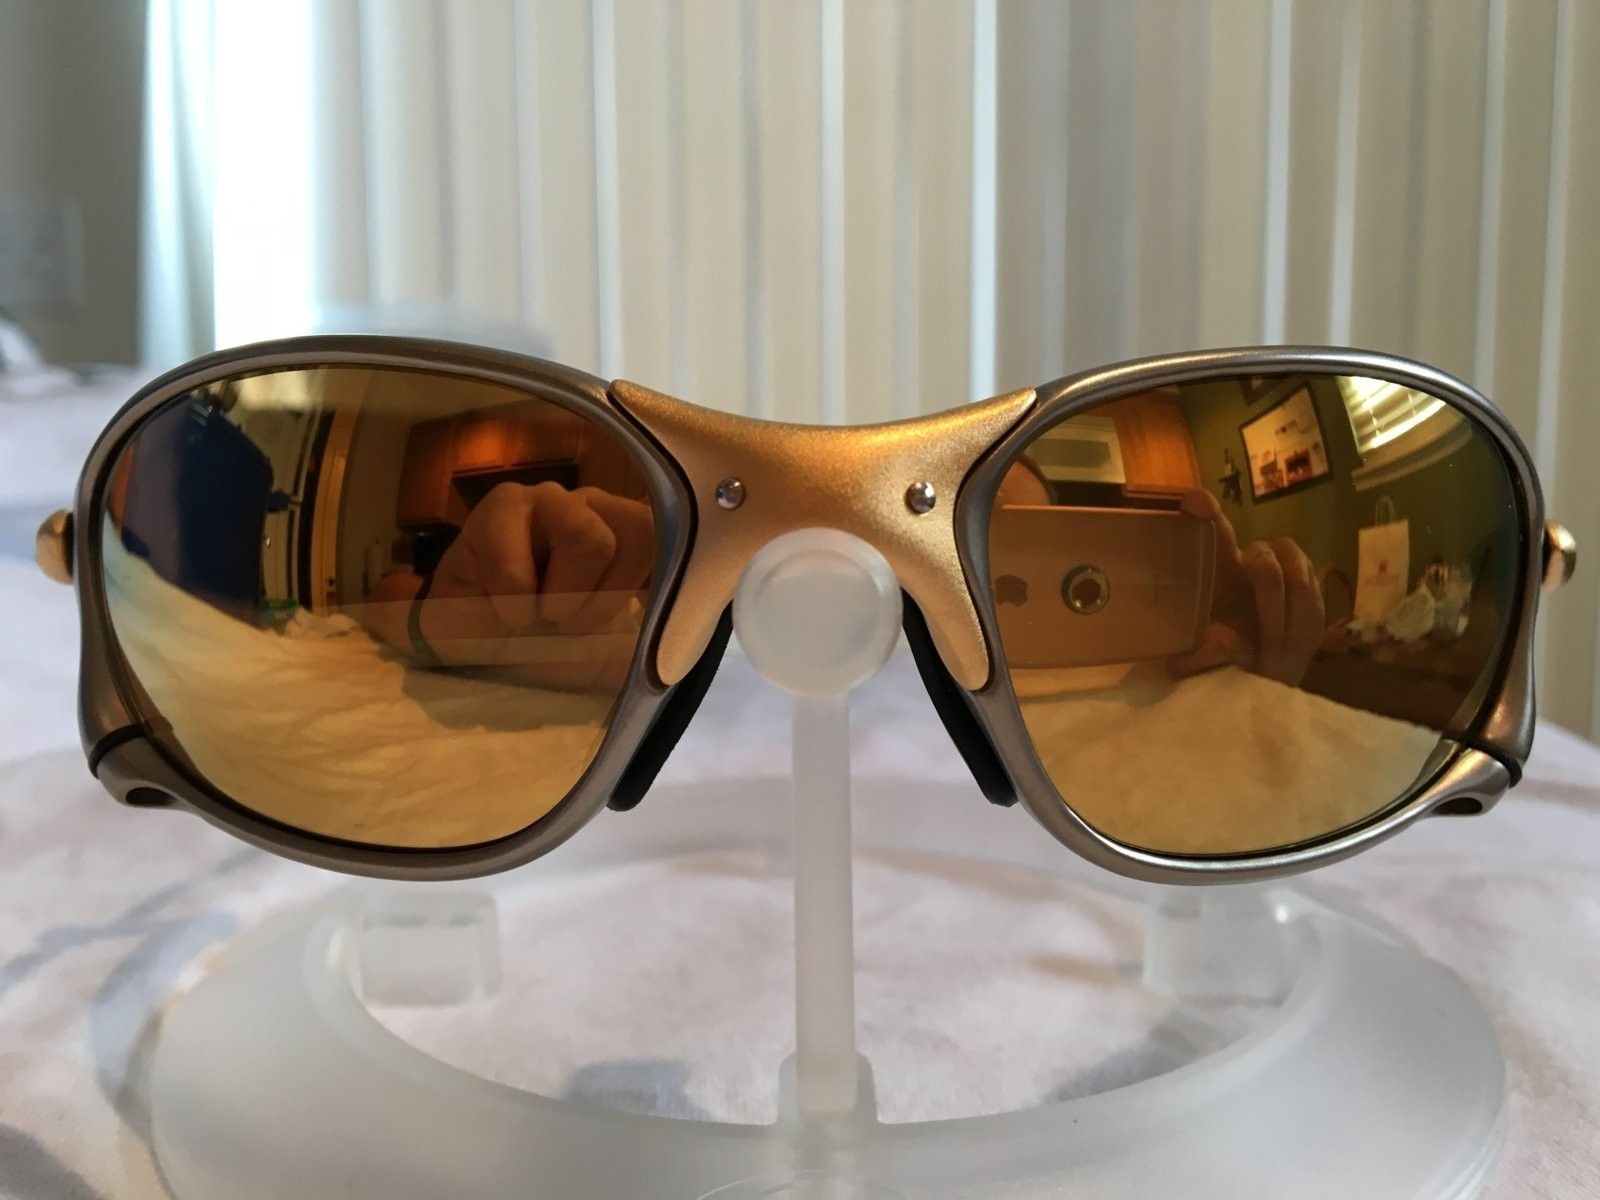 24k XX LNIB (Final price drop) - image.jpeg